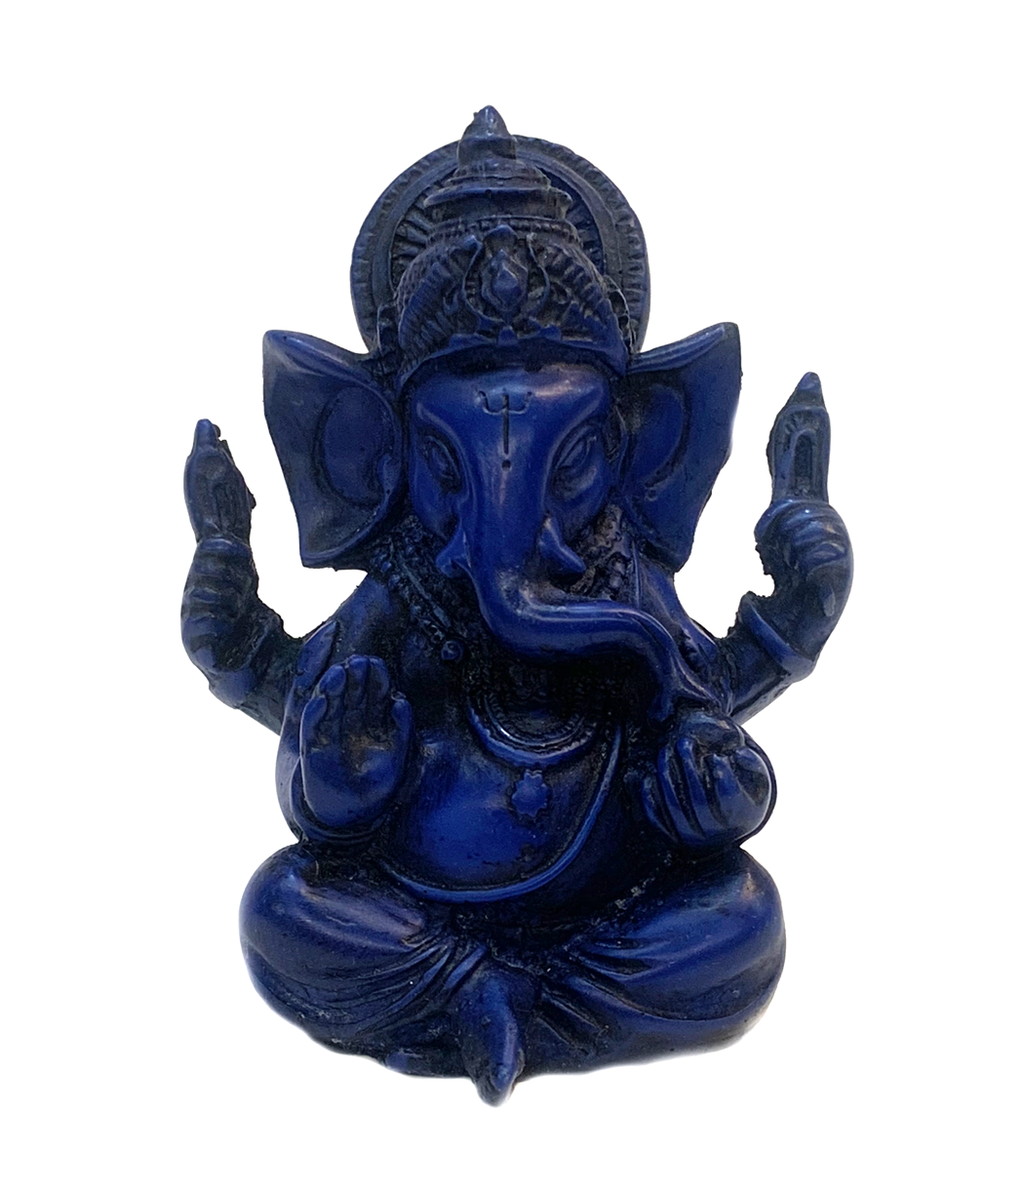 Handmade Royal Blue Raisin Ganesha Statue